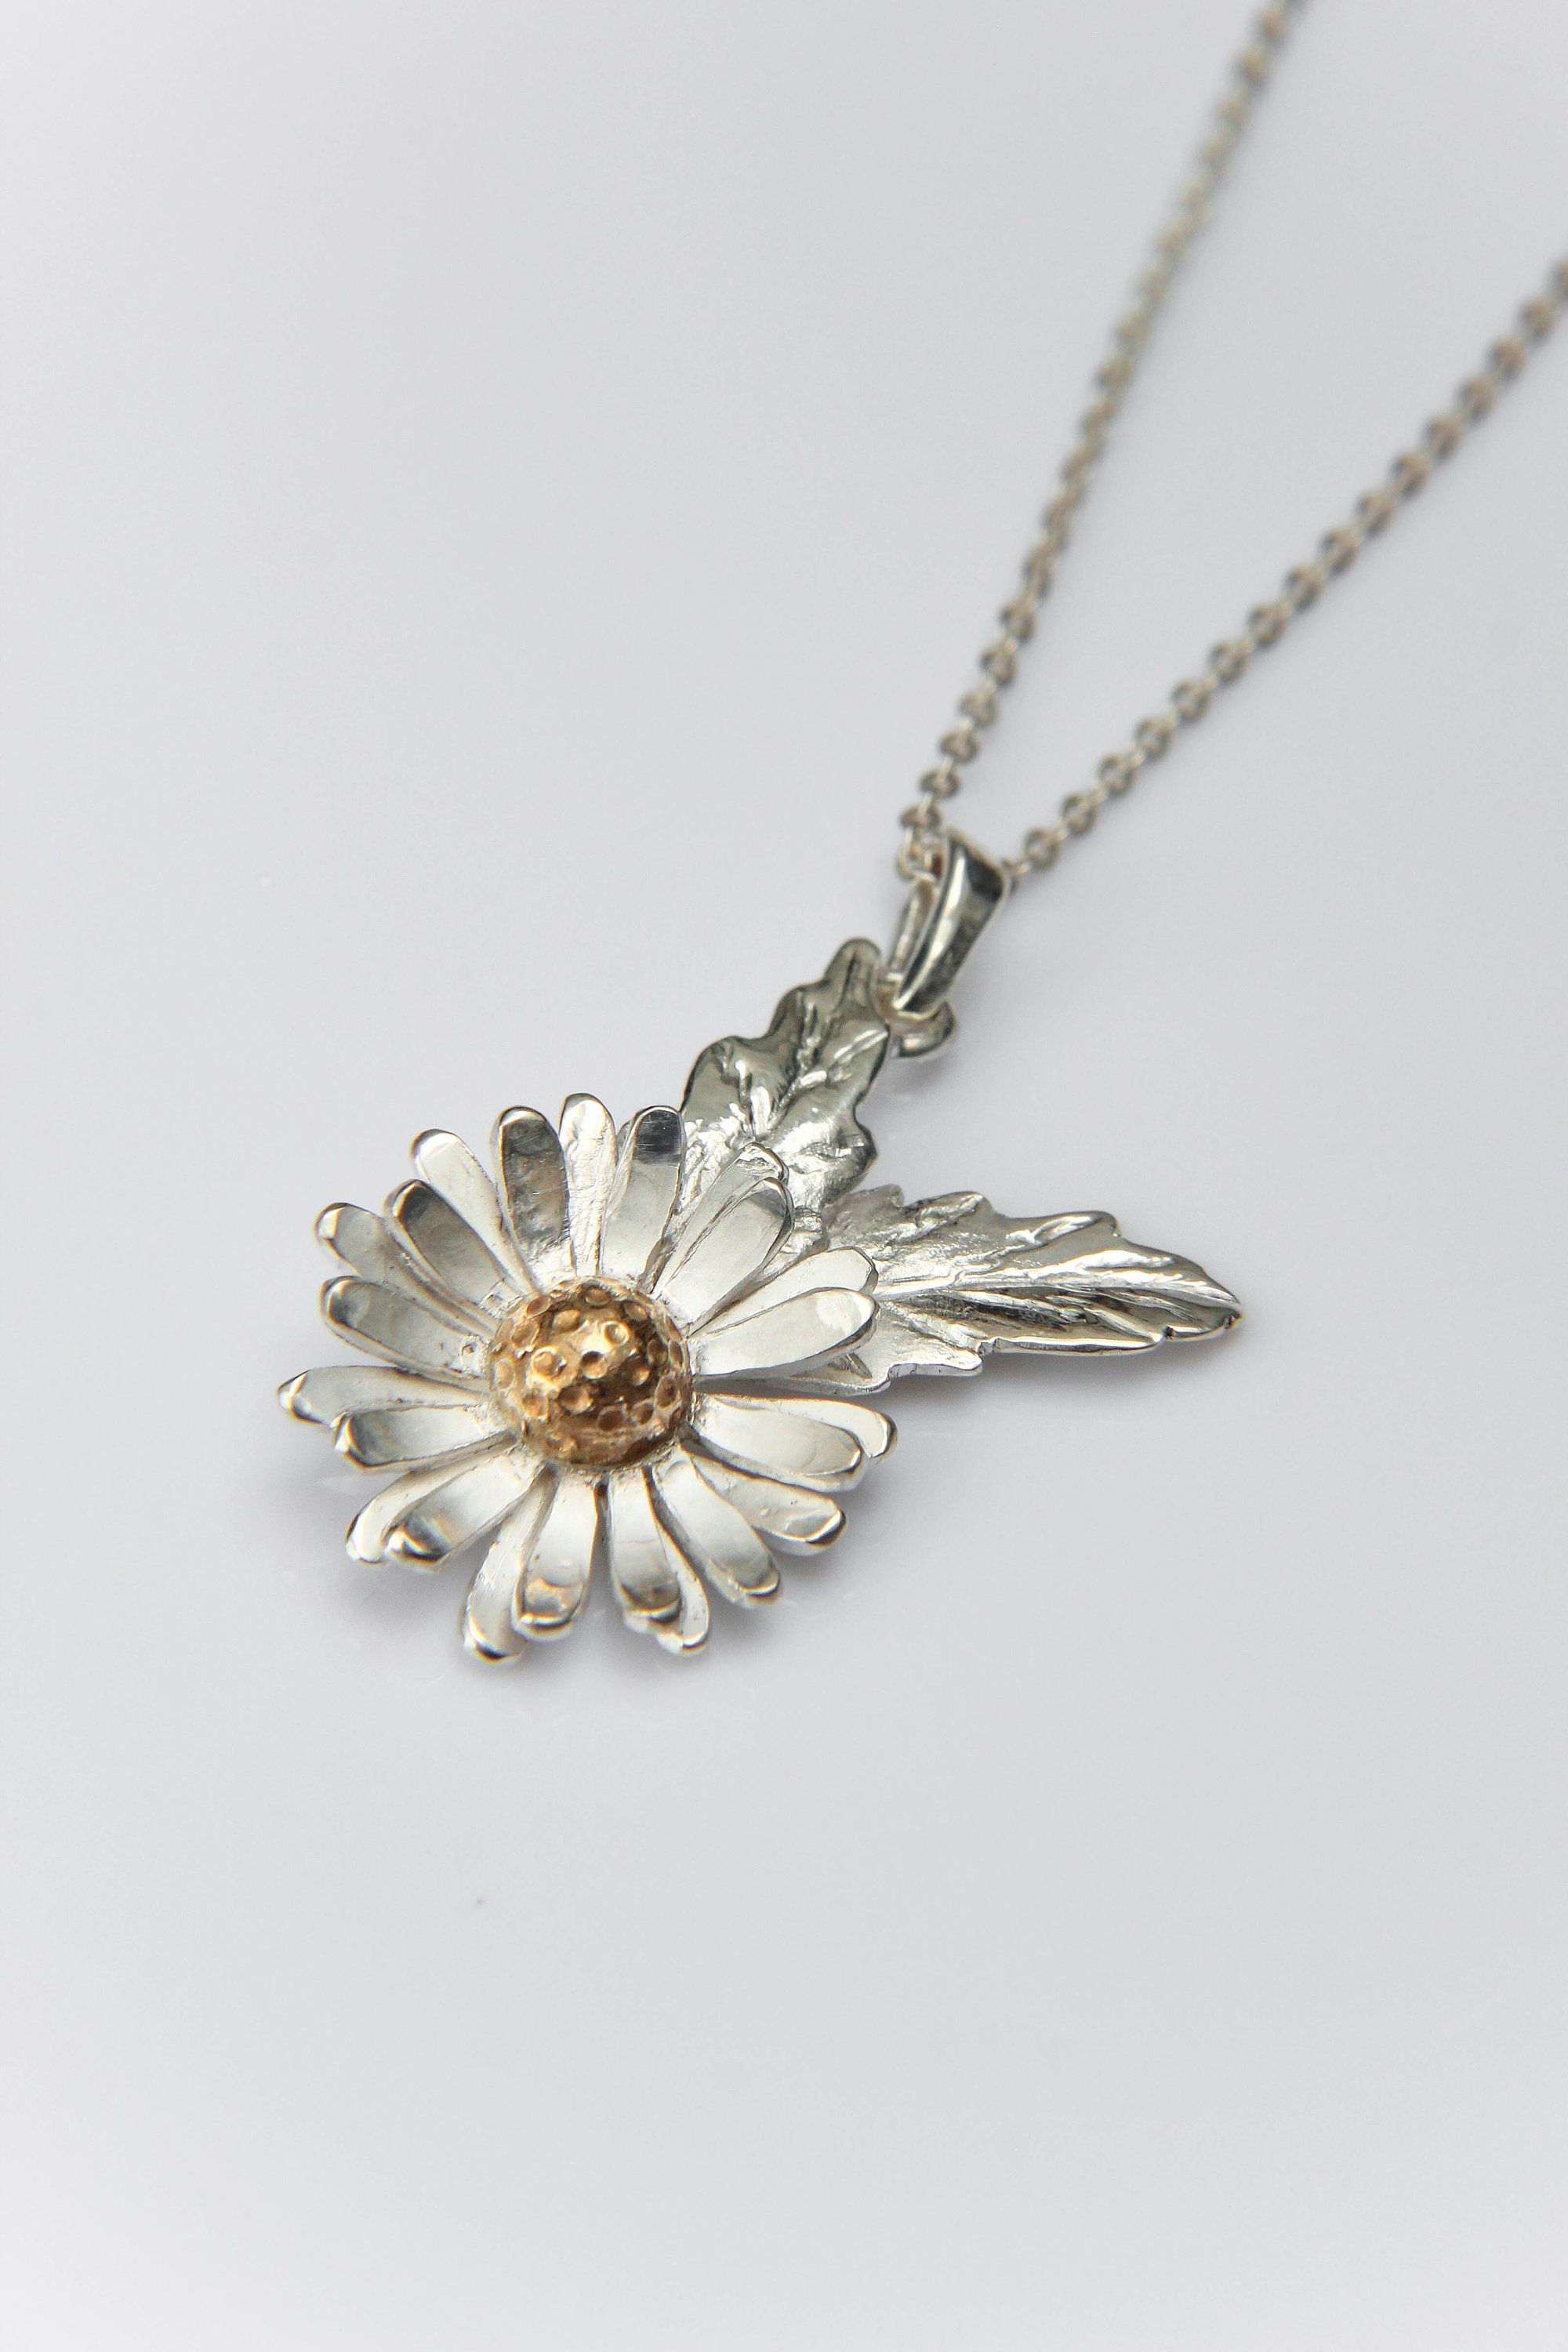 Daisy Flower Pendant Handmade In Sterling Silver With Gold Plating Within Current Pink Cherry Blossom Flower Locket Element Necklaces (View 11 of 25)